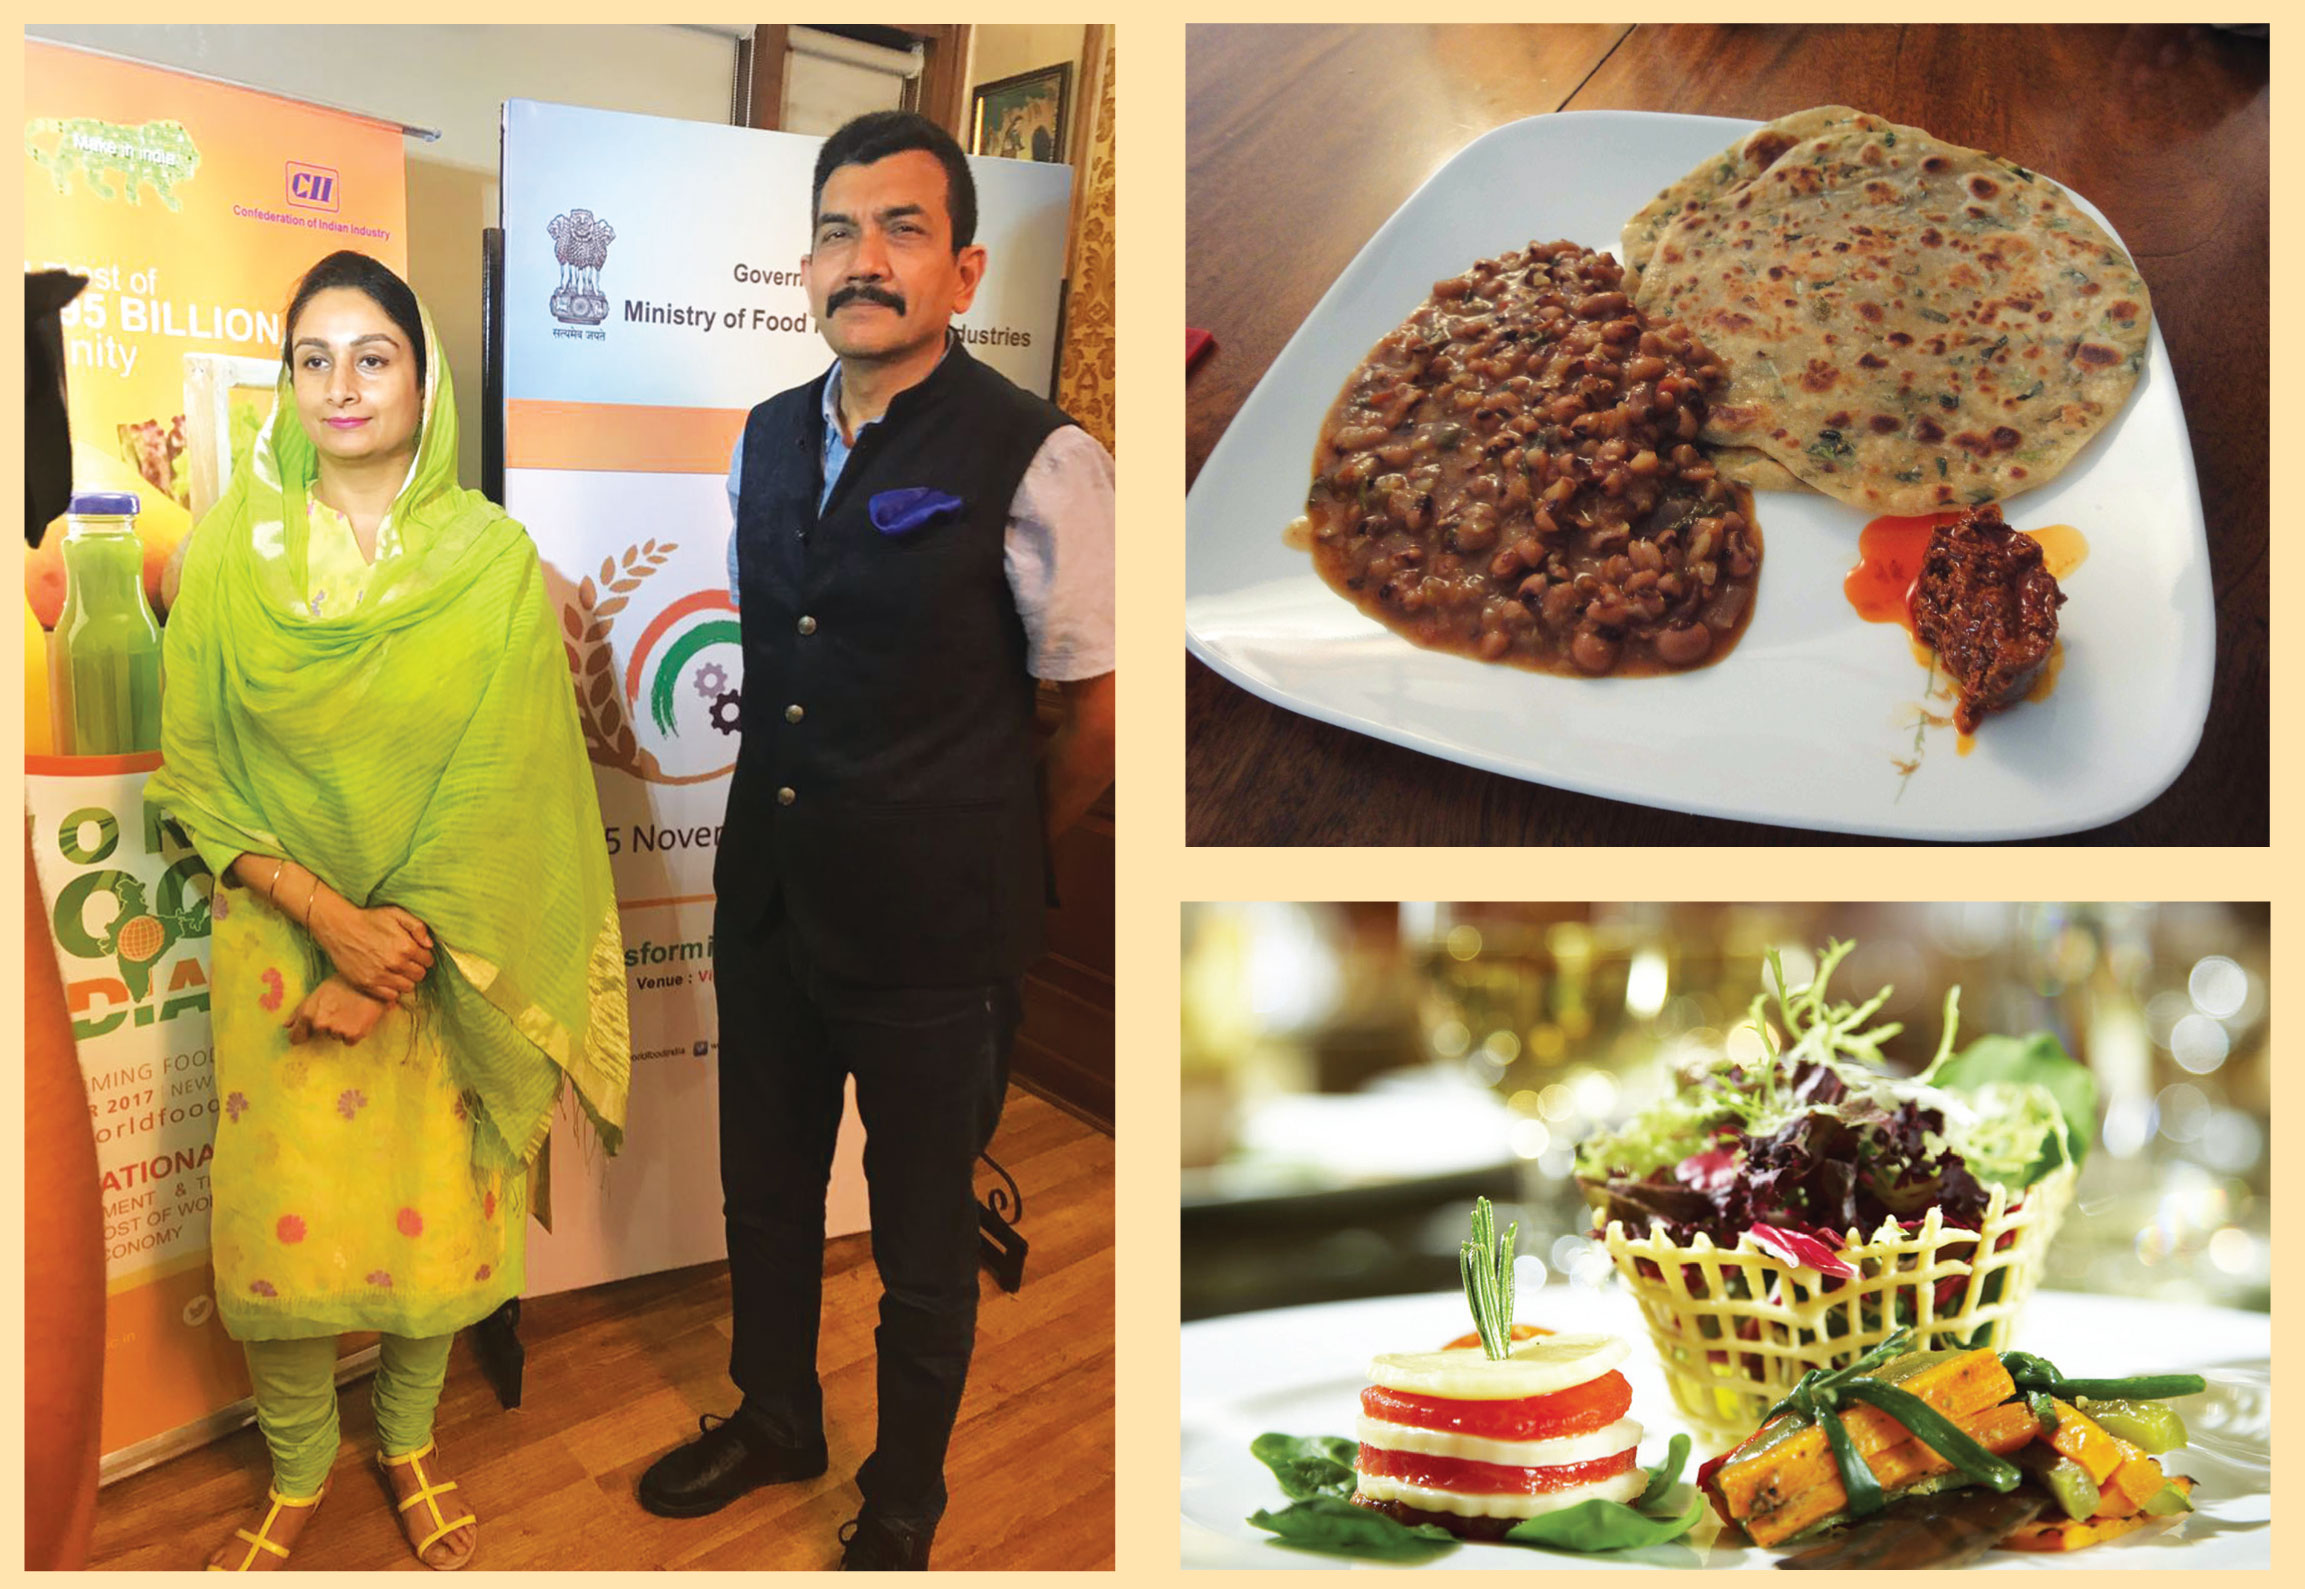 Hospitality biz india chef sanjeev kapoor celebrity chef q what do you think we need to do to make indian food appealing to the world generally chefs do some customisation when they introduce food to a new forumfinder Choice Image